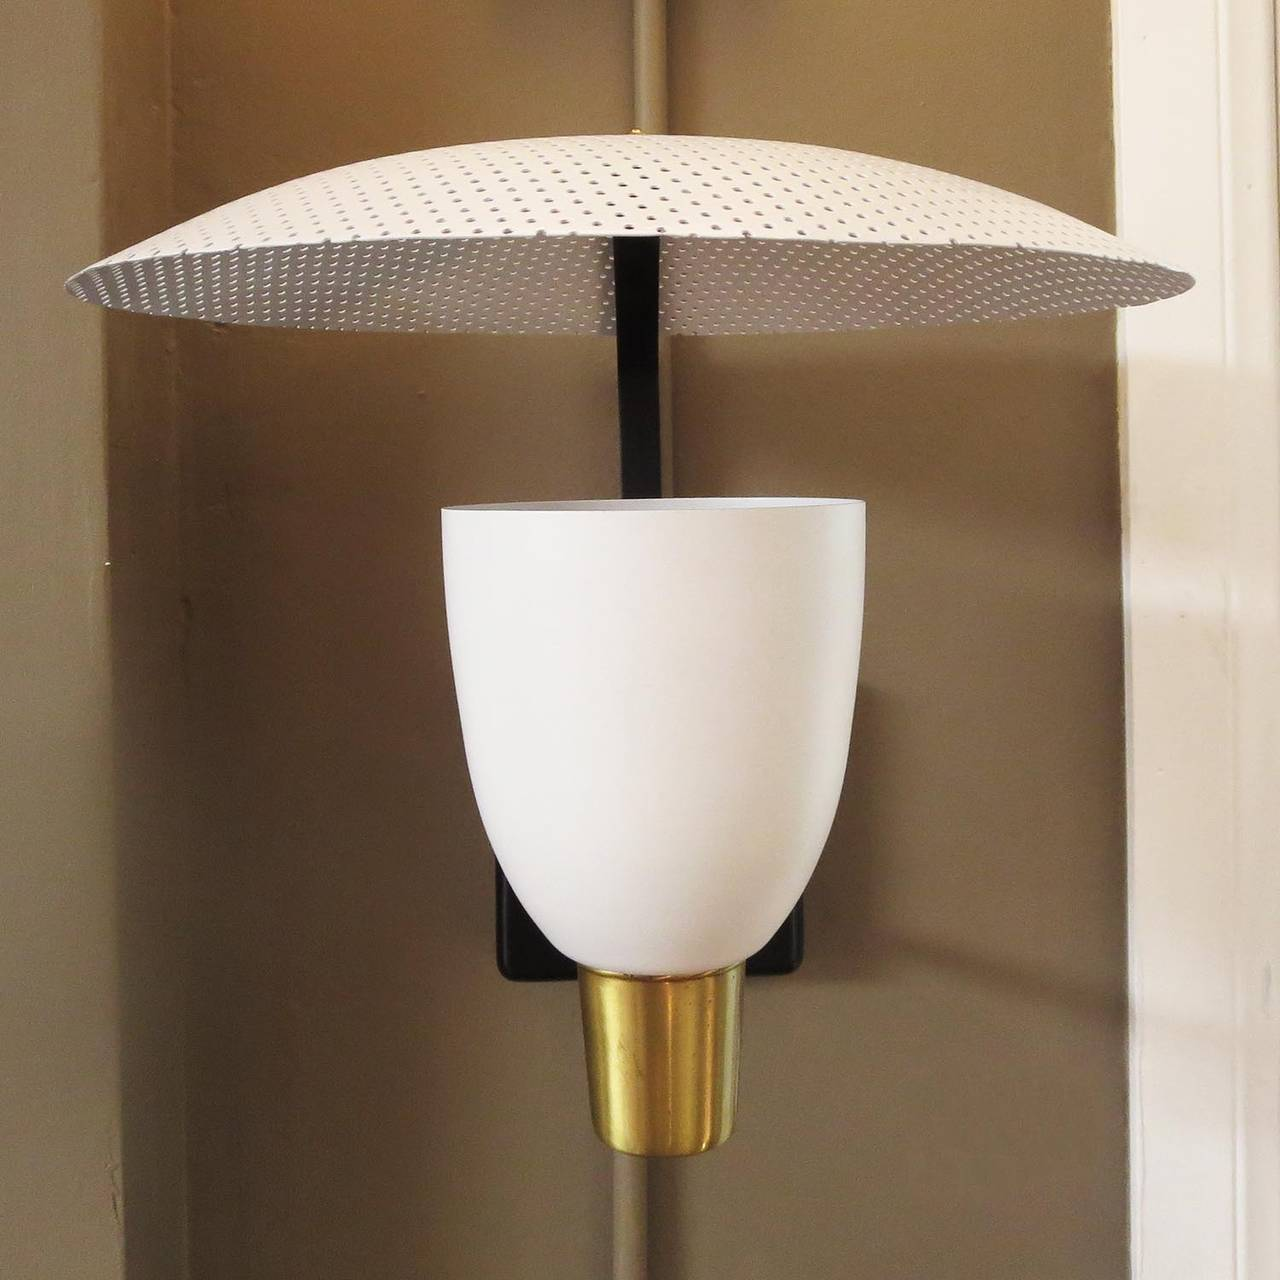 Mid-Century Wall Sconces in the Style of Stilnovo at 1stdibs